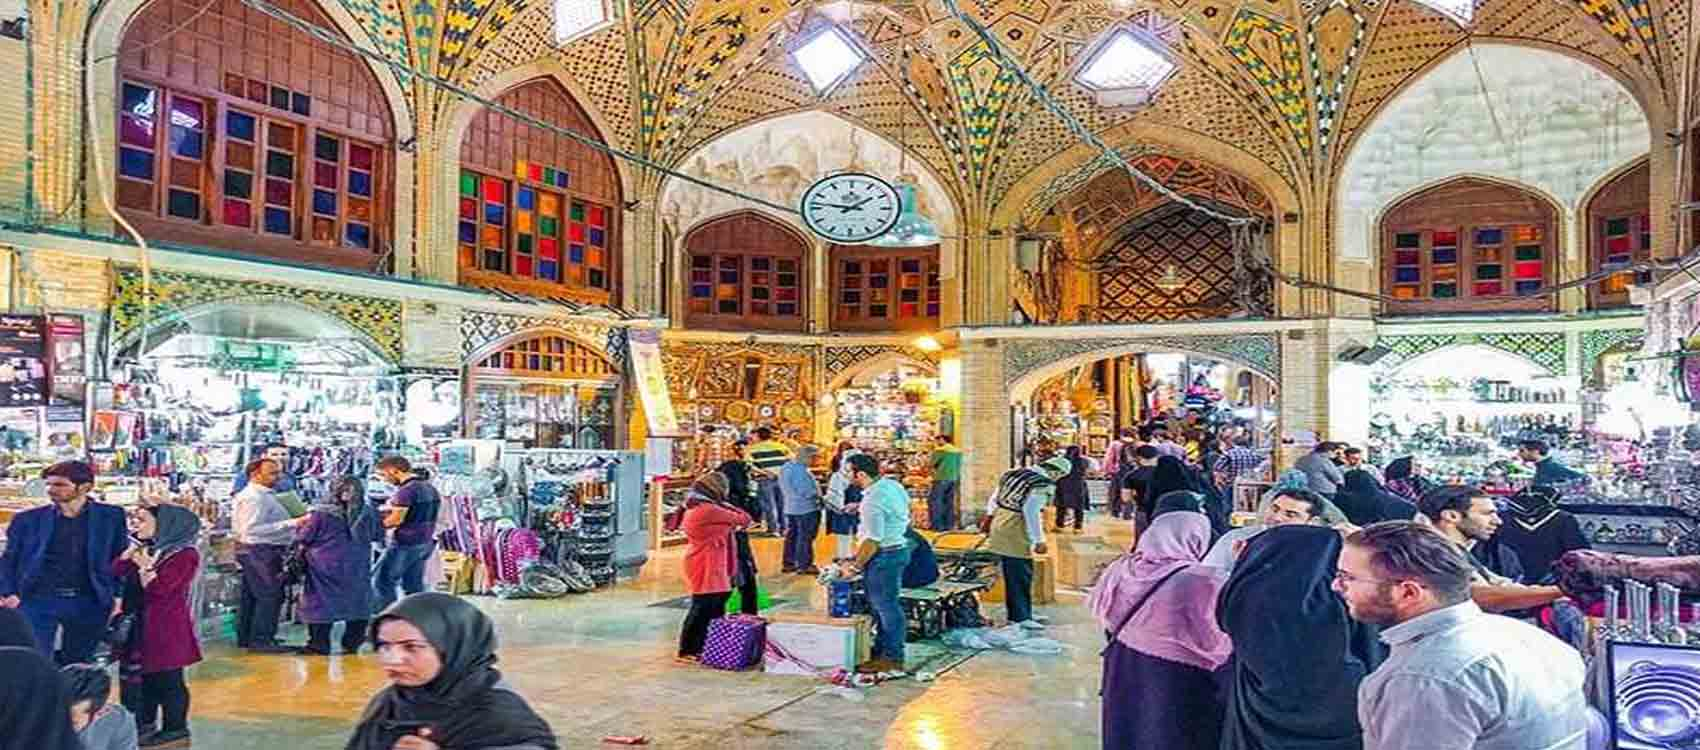 Kashan Bazaar,Bazaar of Kashan, Kashan Historical Bazaar,tourist destination in Kashan,Kashan attractions,Iran attractions,Timche amon o dole,tr2p tour operator